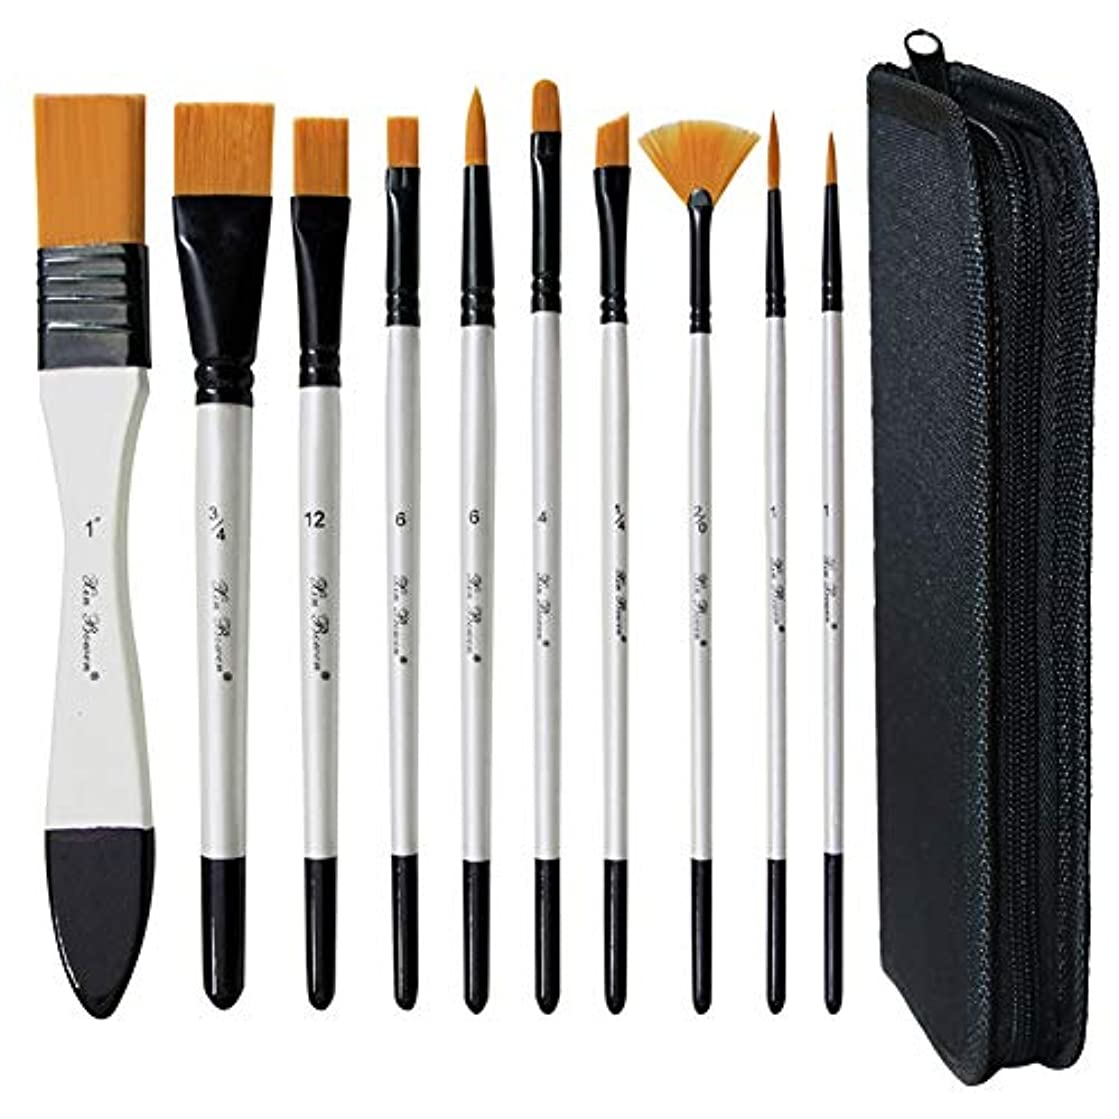 MAMUNU 10 Pcs Art Paint Brush Set with a Carrying Case for Acrylic, Oil, Watercolor and Gouache Painting, Artist Face and Body Professional Painting Kits